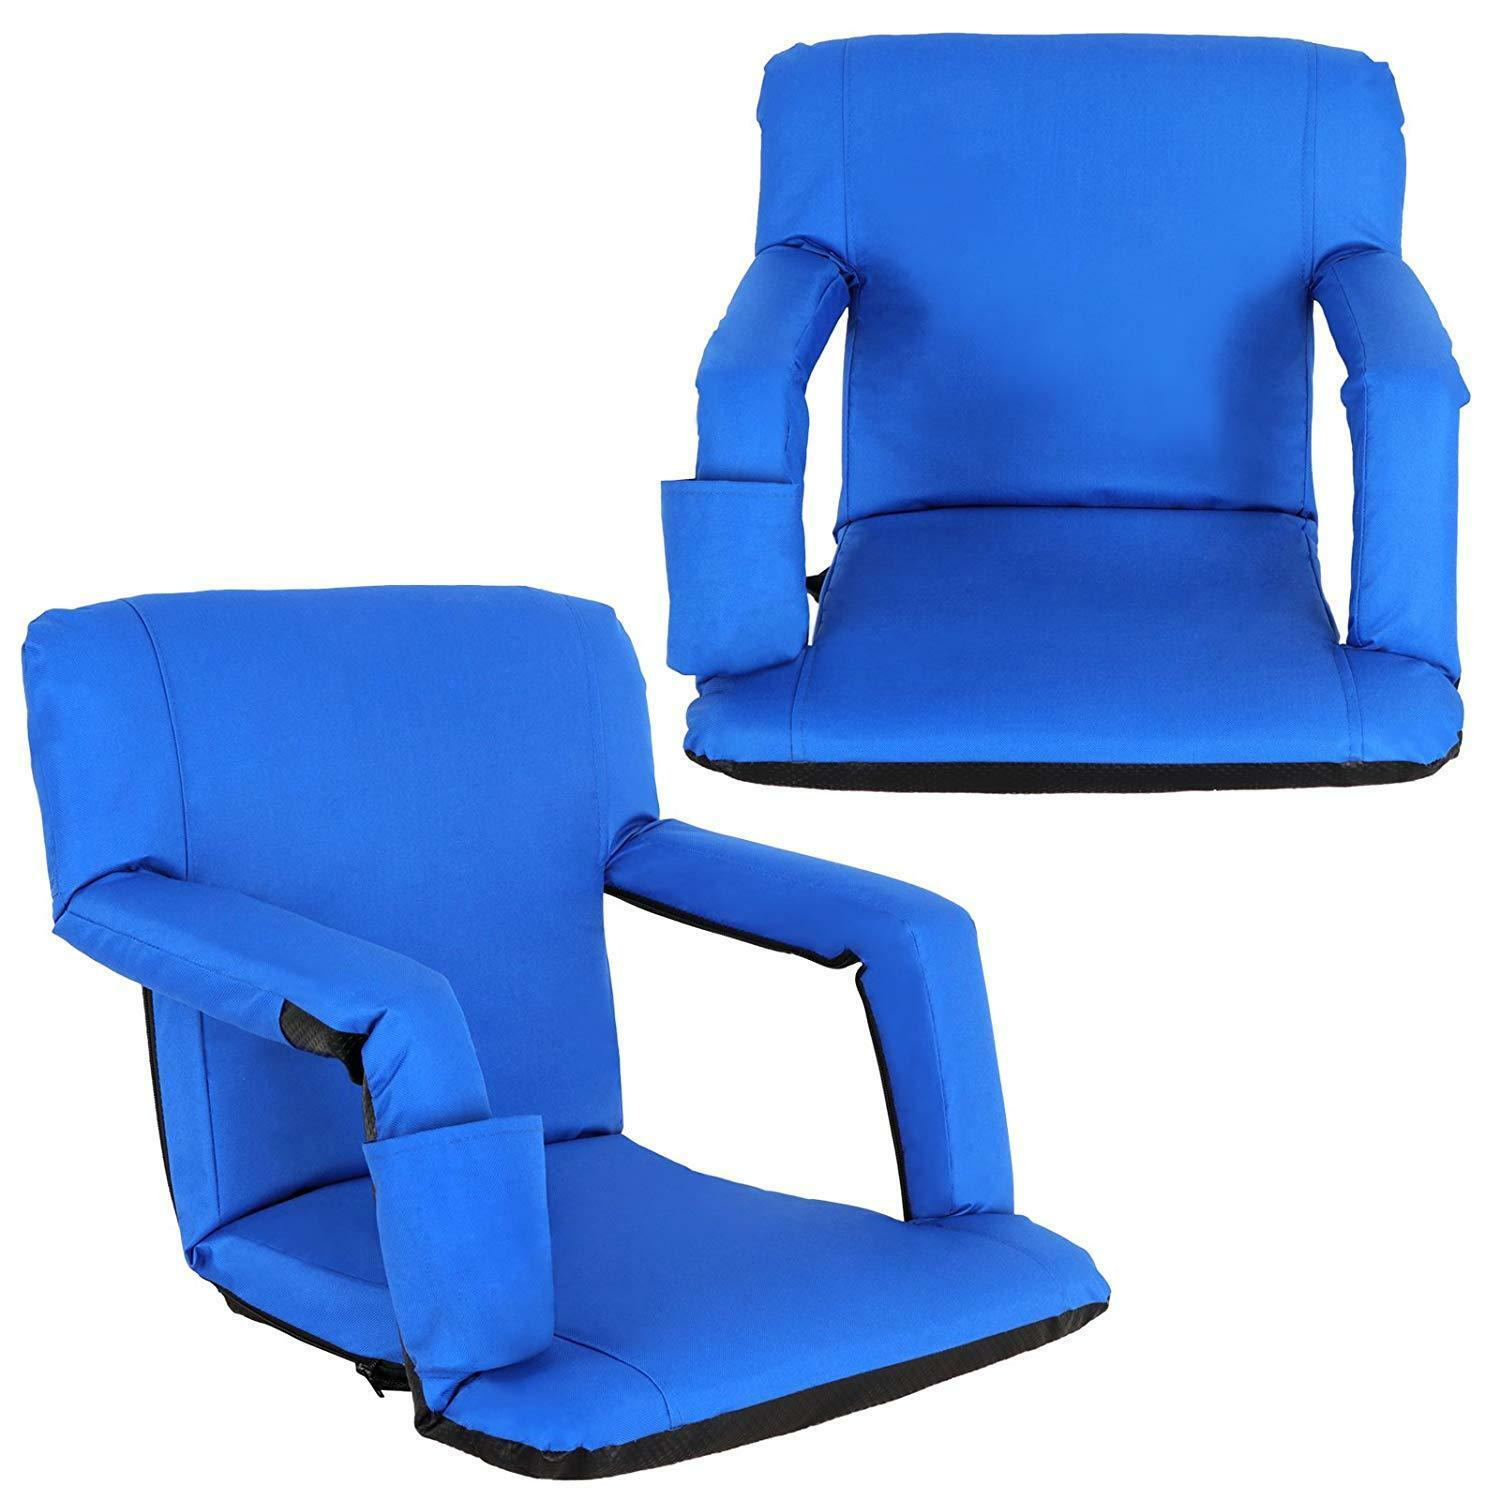 Portable 2 Pieces bluee Stadium Seat Gym Reclining Seat 5 Adjustable Positions